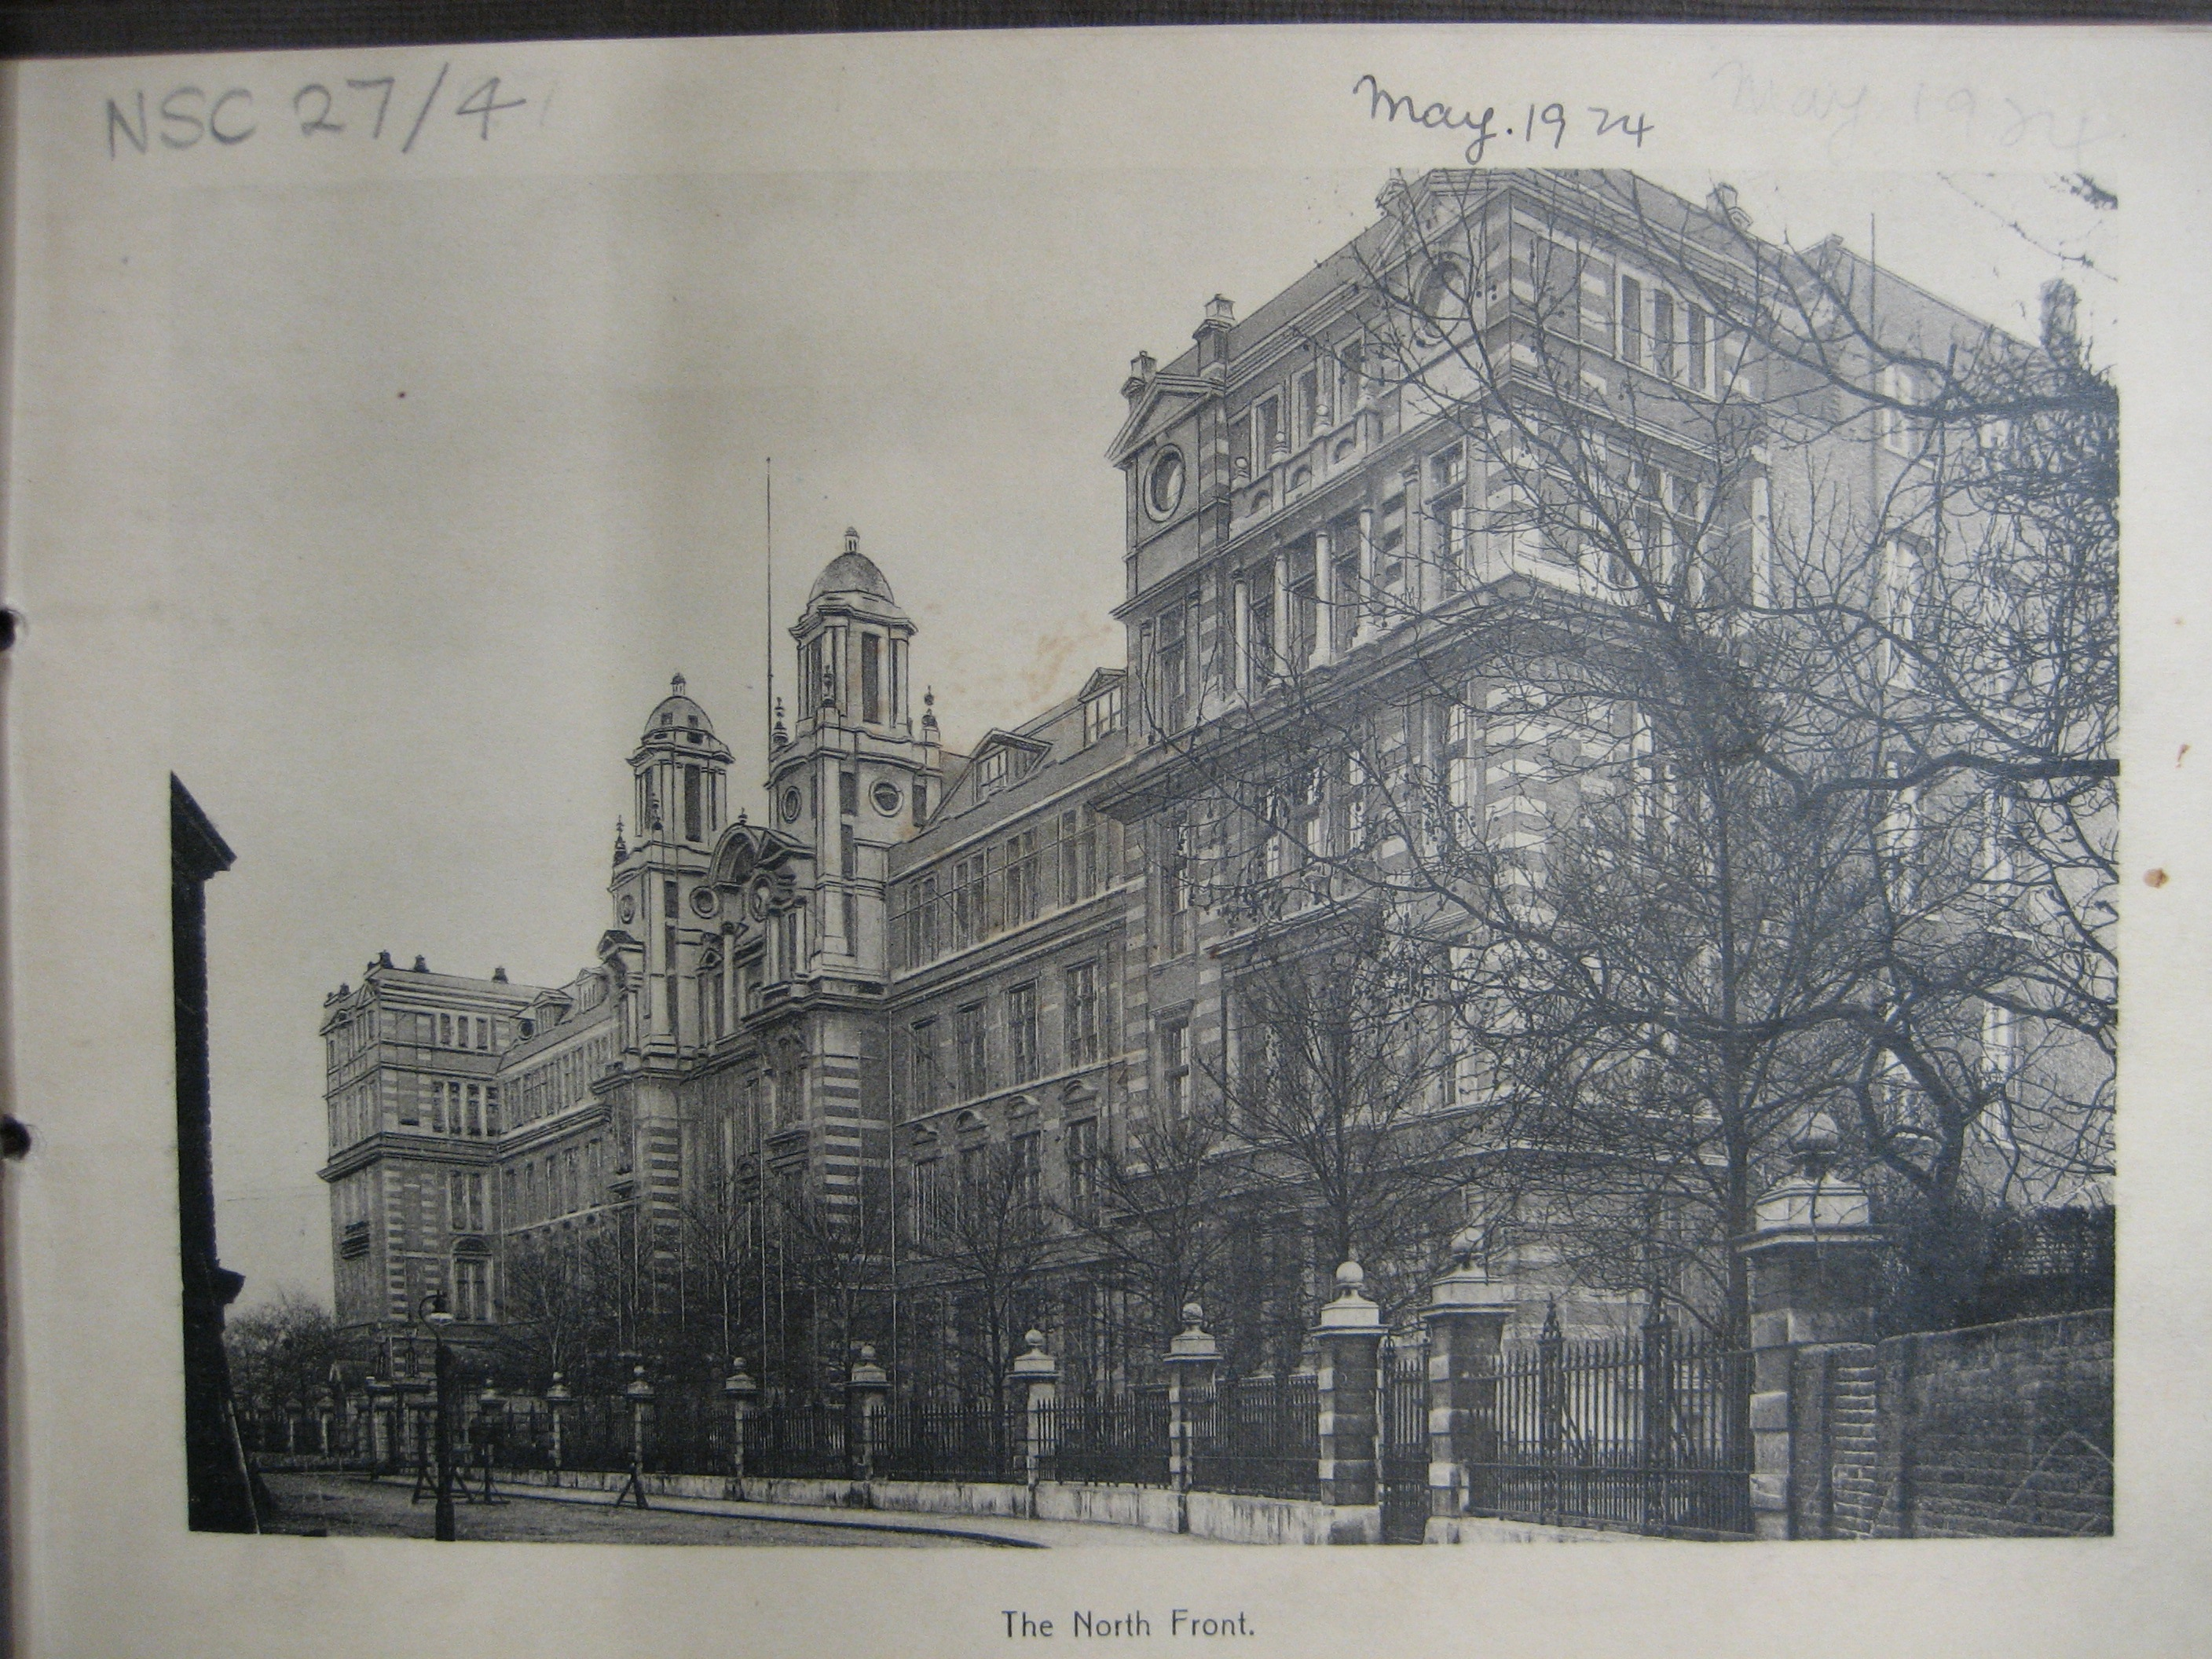 A 1924 view of the main block of Blythe House